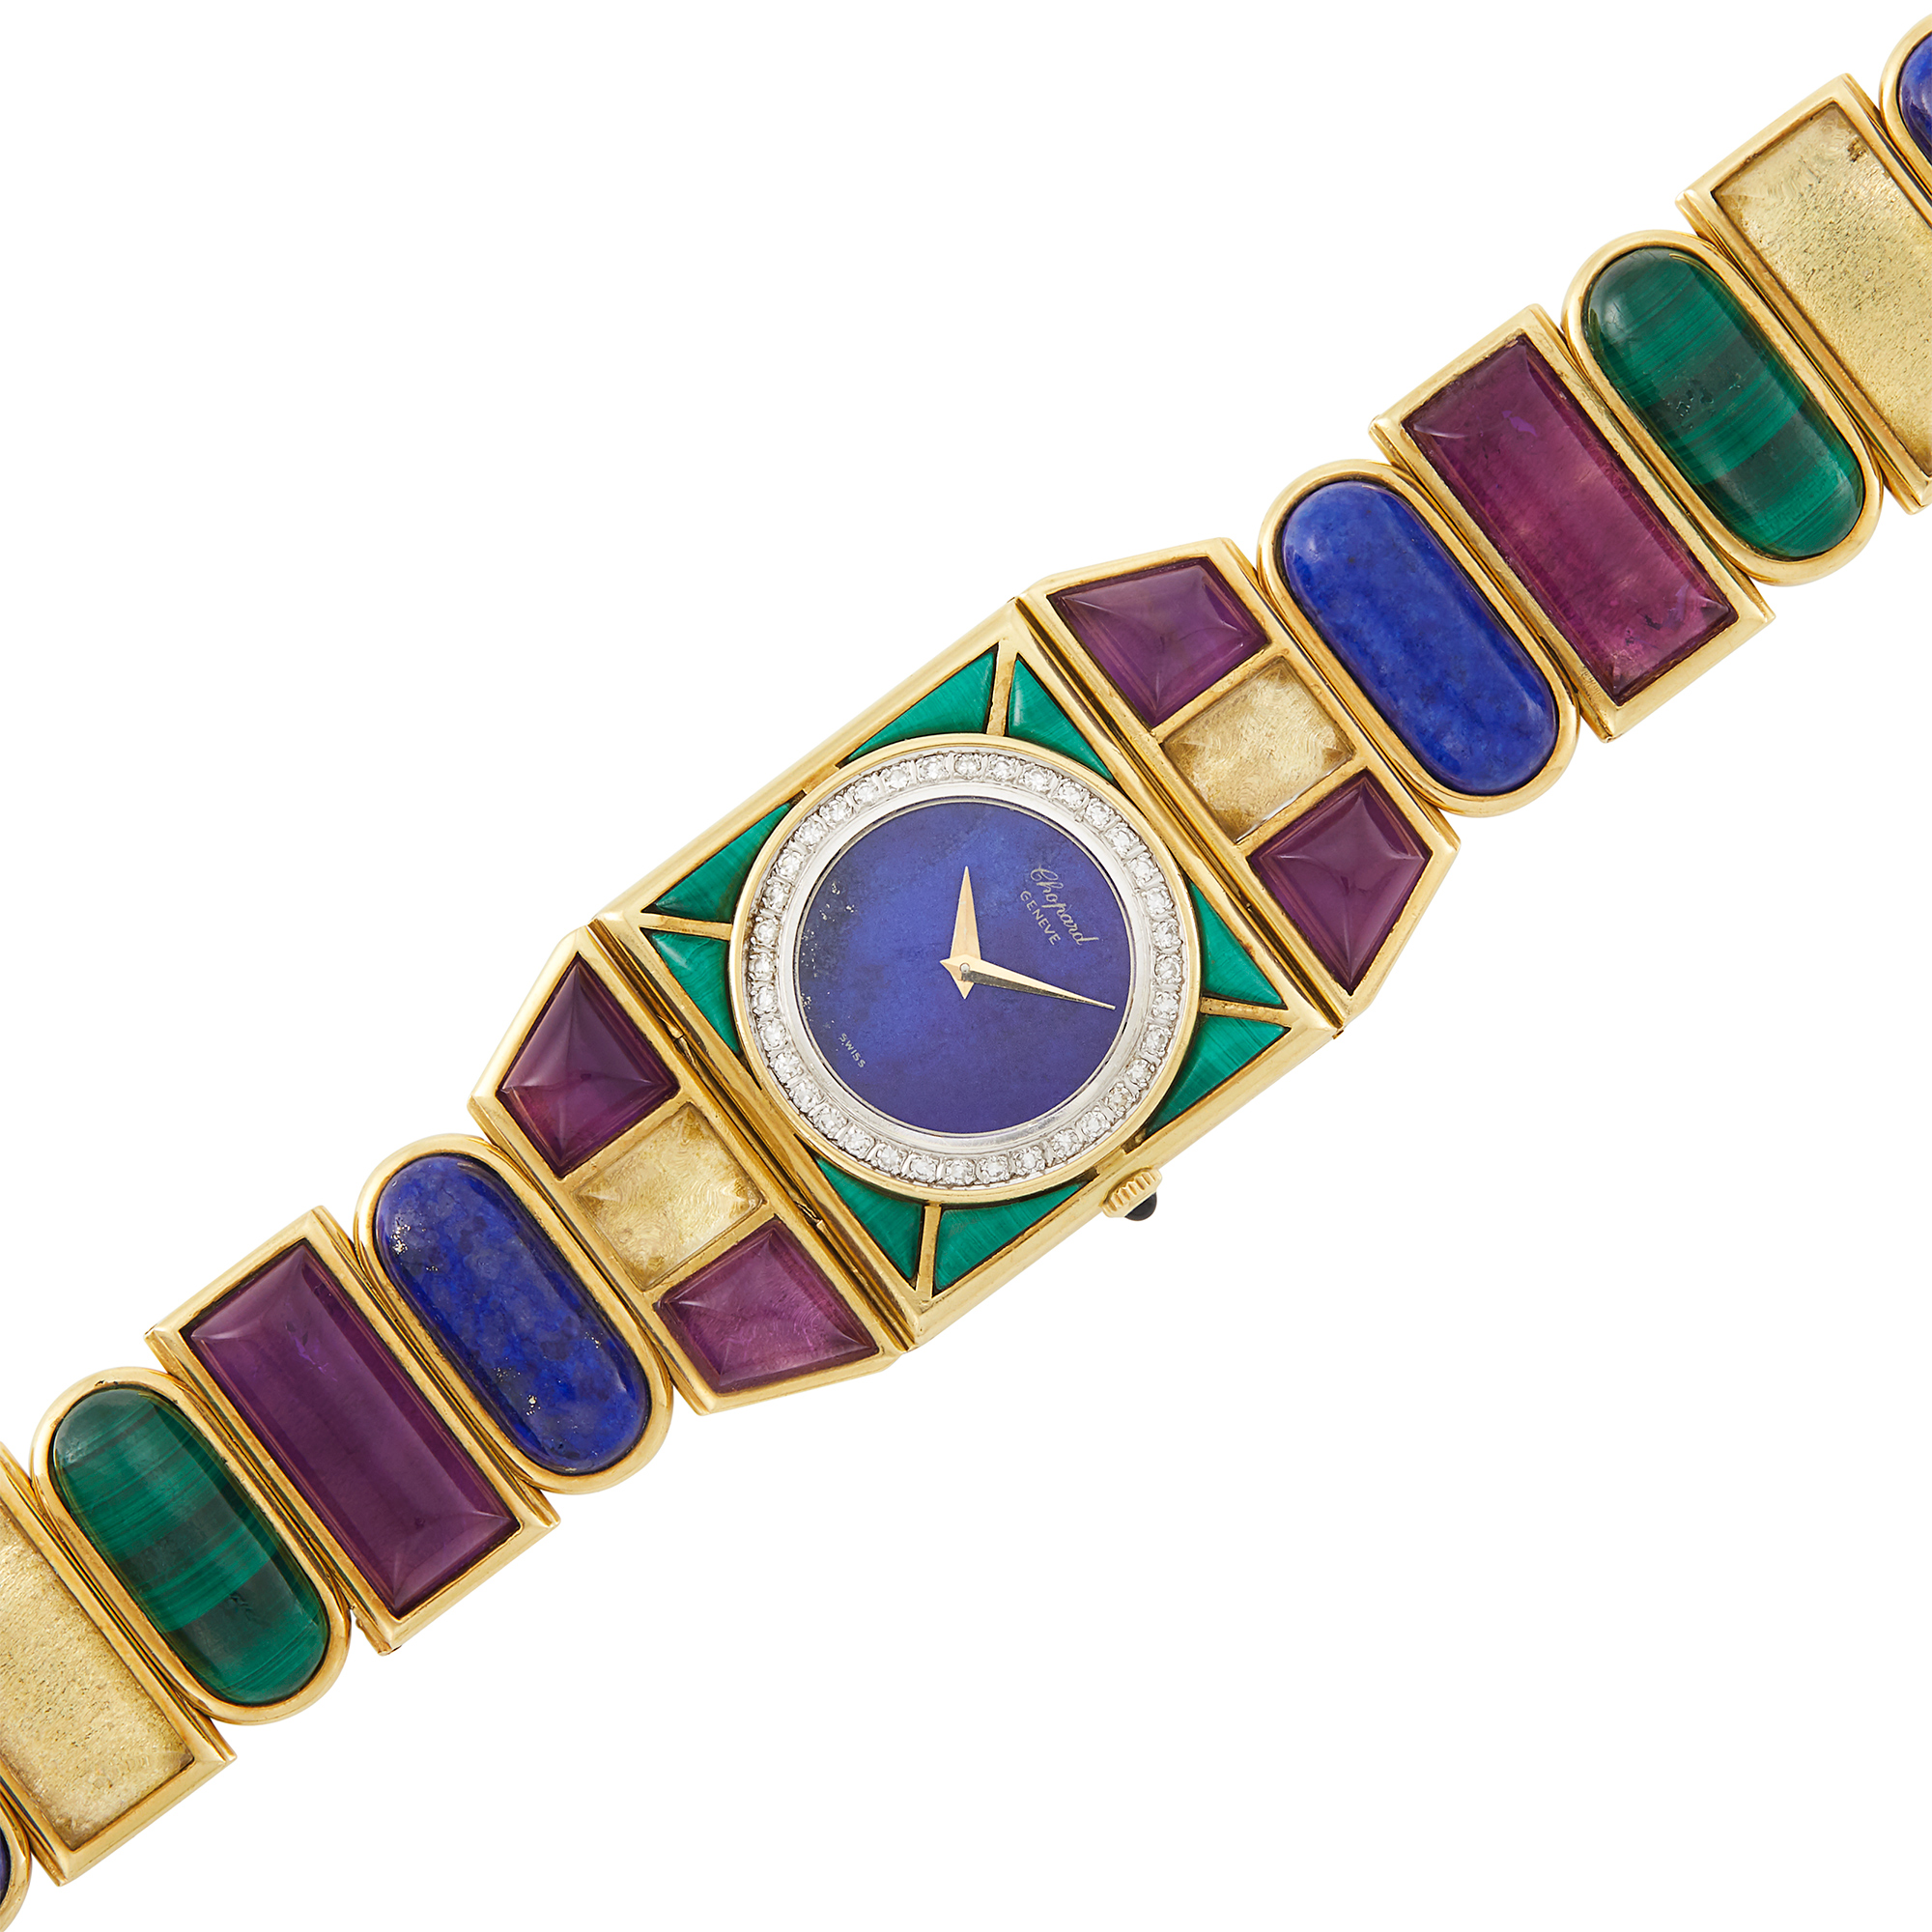 Lot image - Gold, Amethyst, Malachite, Citrine, Lapis and Diamond Wristwatch, Chopard